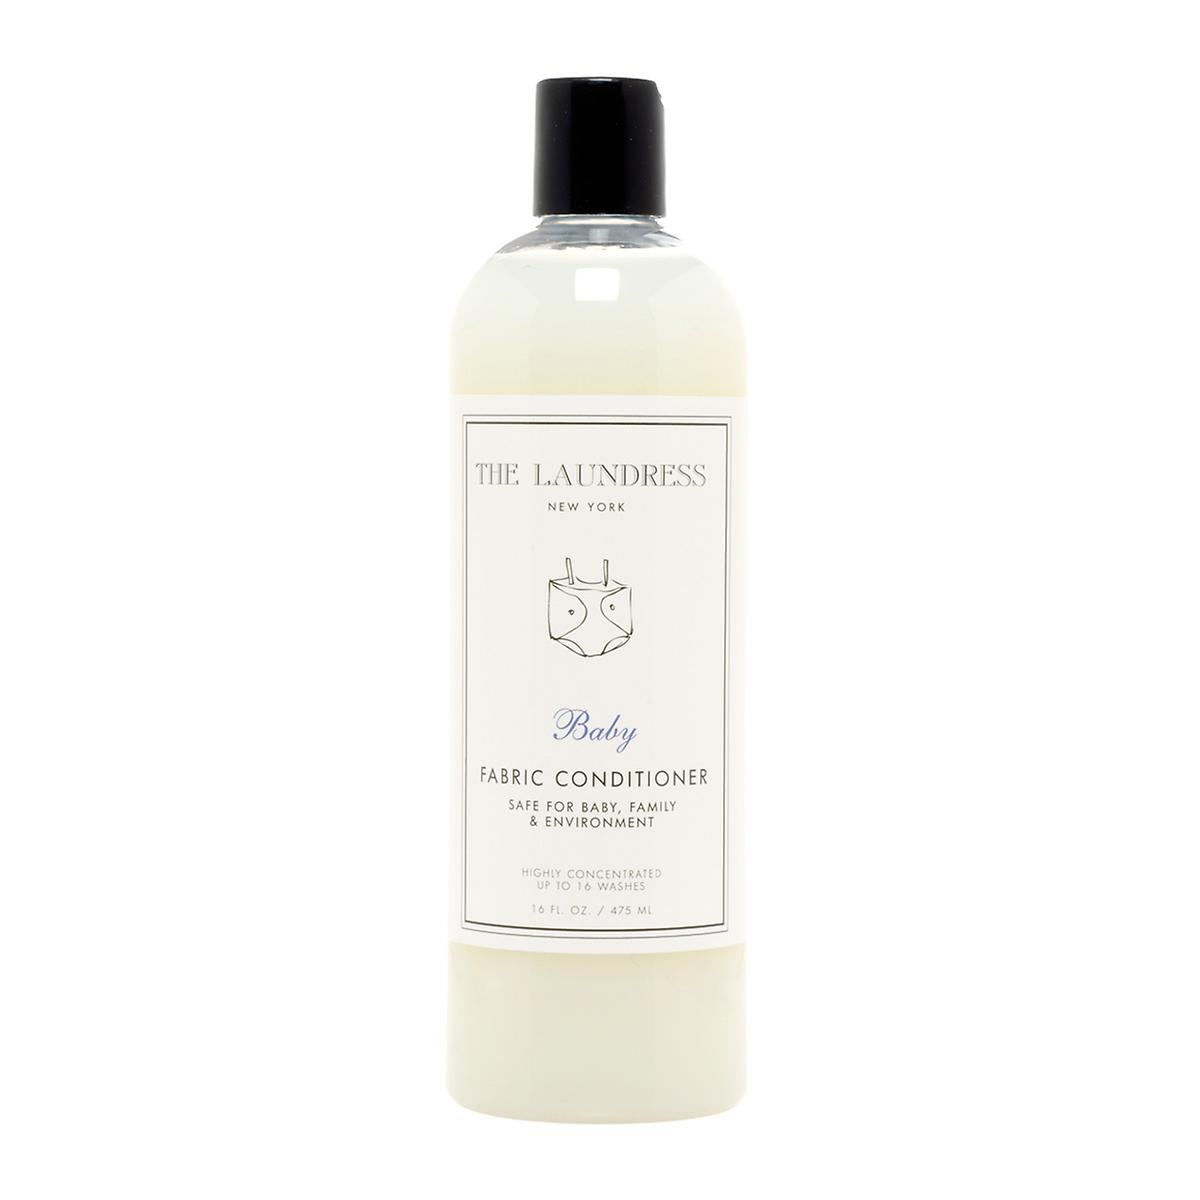 The Laundress 16 oz. Baby Fabric Conditioner